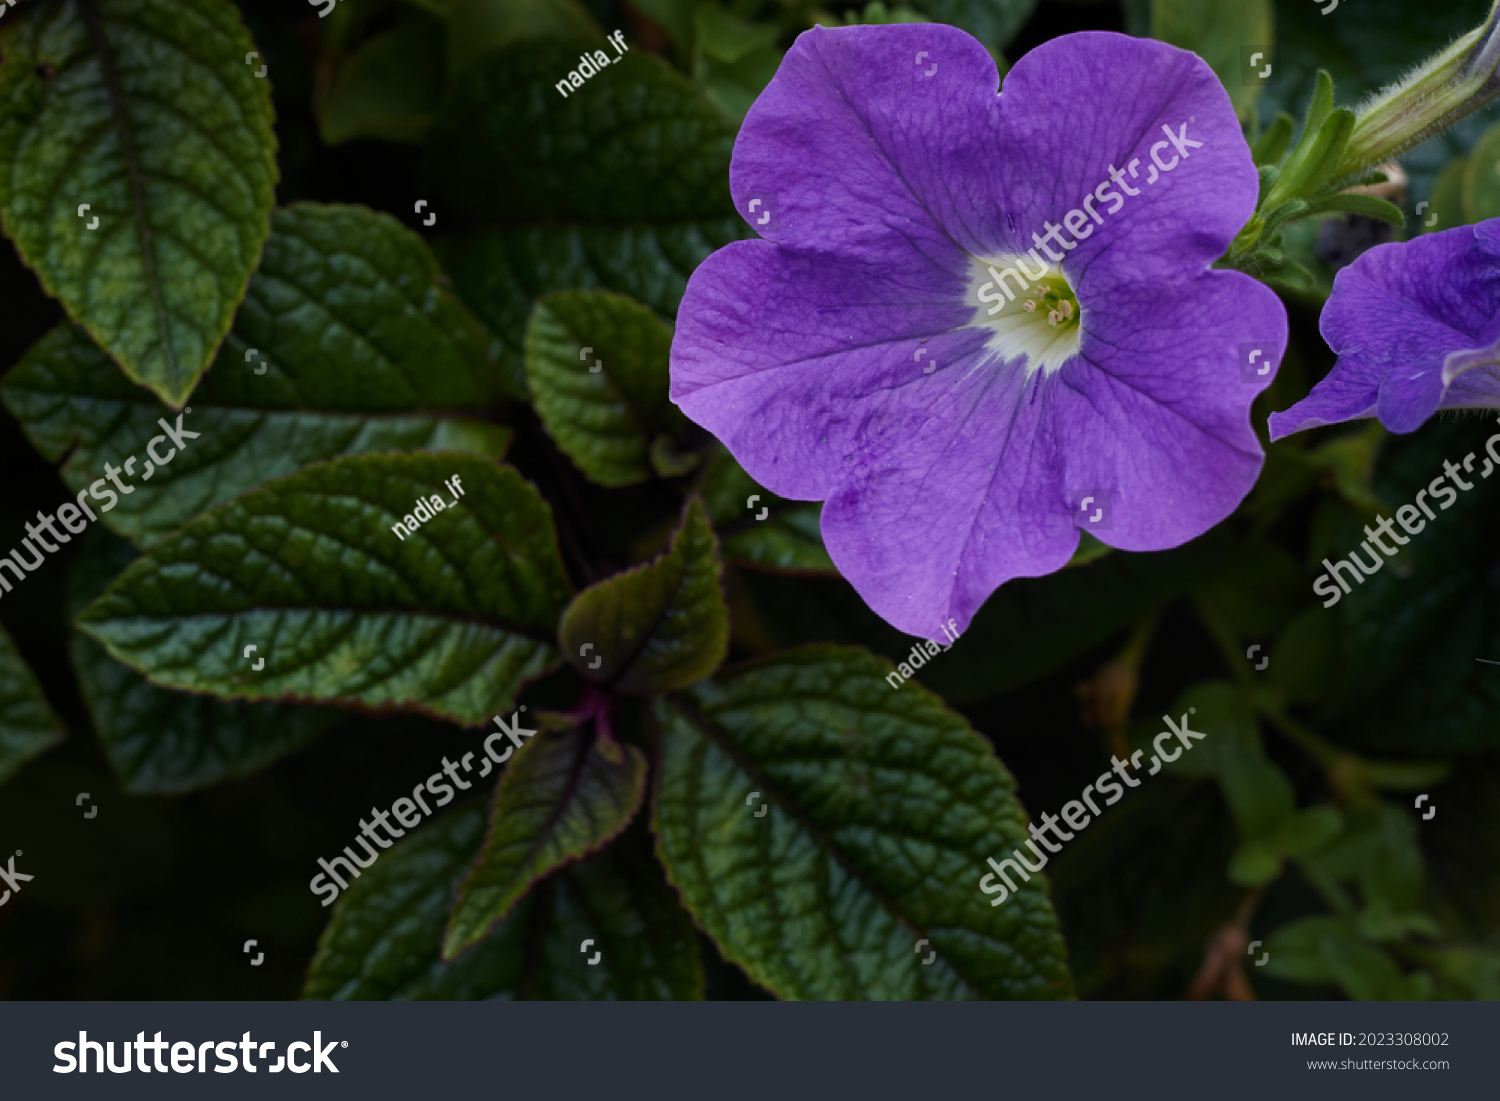 Purple mexican petunia beautiful blooming flower green leaf background. High quality photo #2023308002